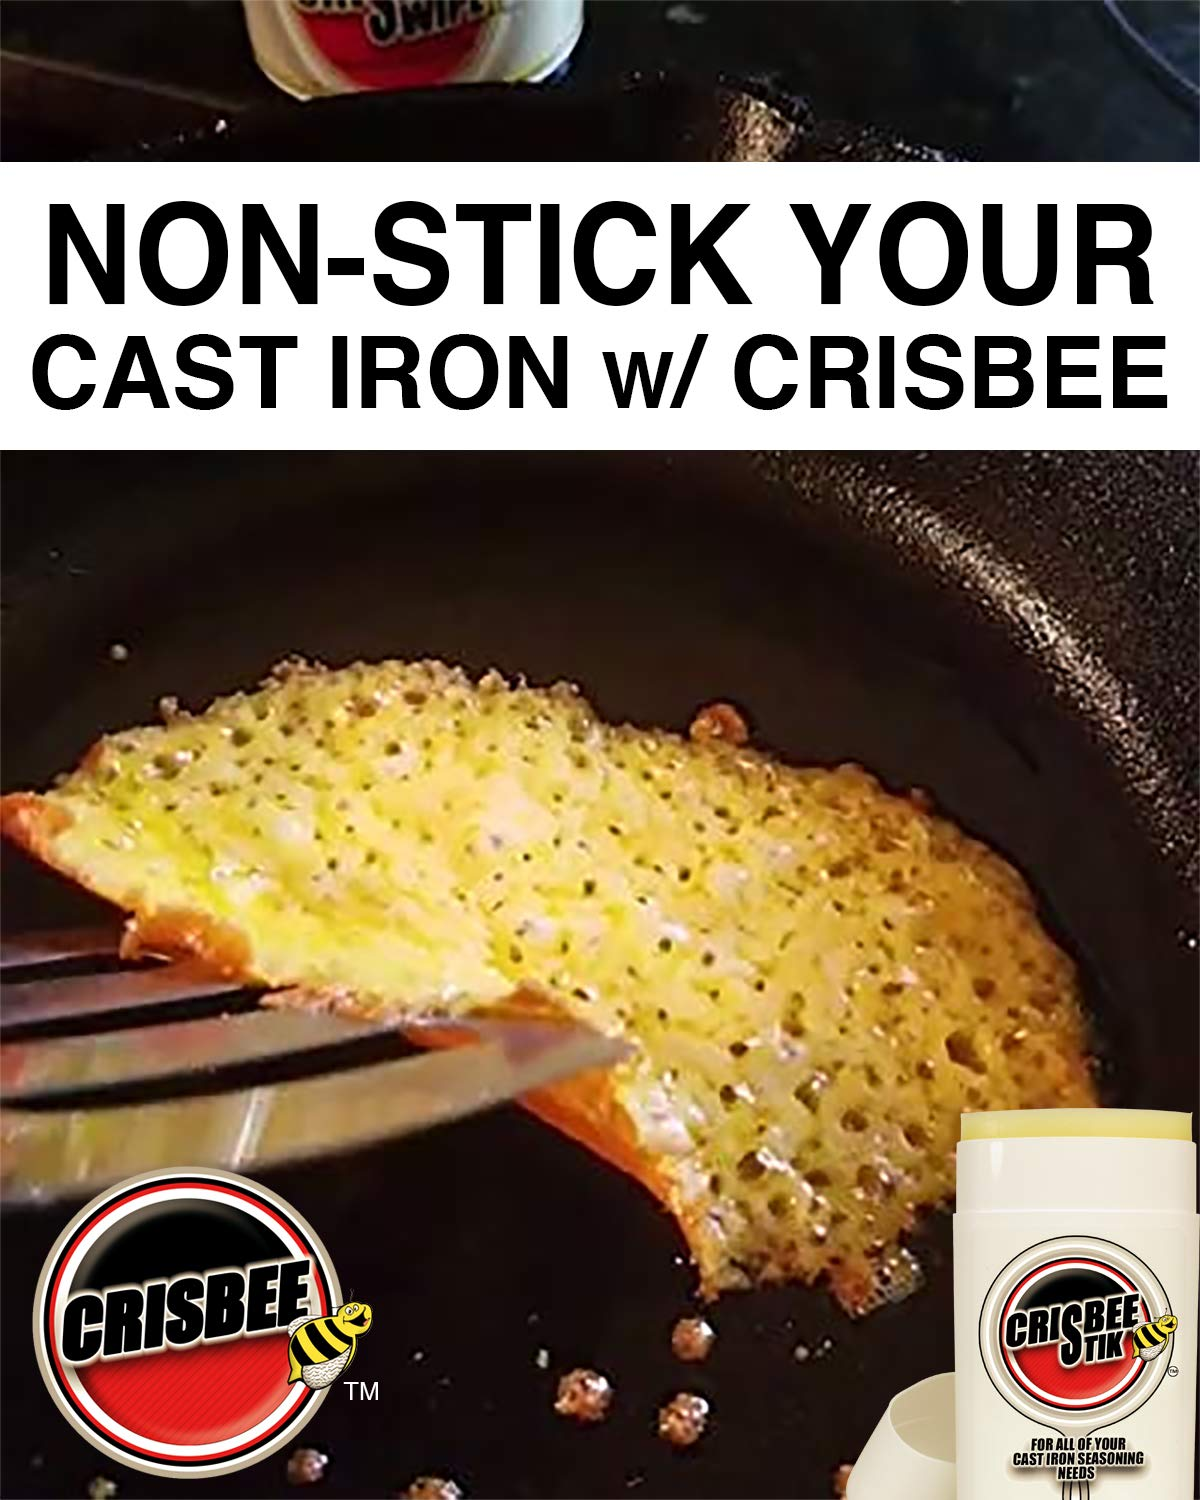 Larbee Stik Cast Iron Seasoning Family Made in USA The Cast Iron Seasoning Oil /& Conditioner Preferred by the Experts Maintain a Cleaner Non-Stick Skillet Crisbee